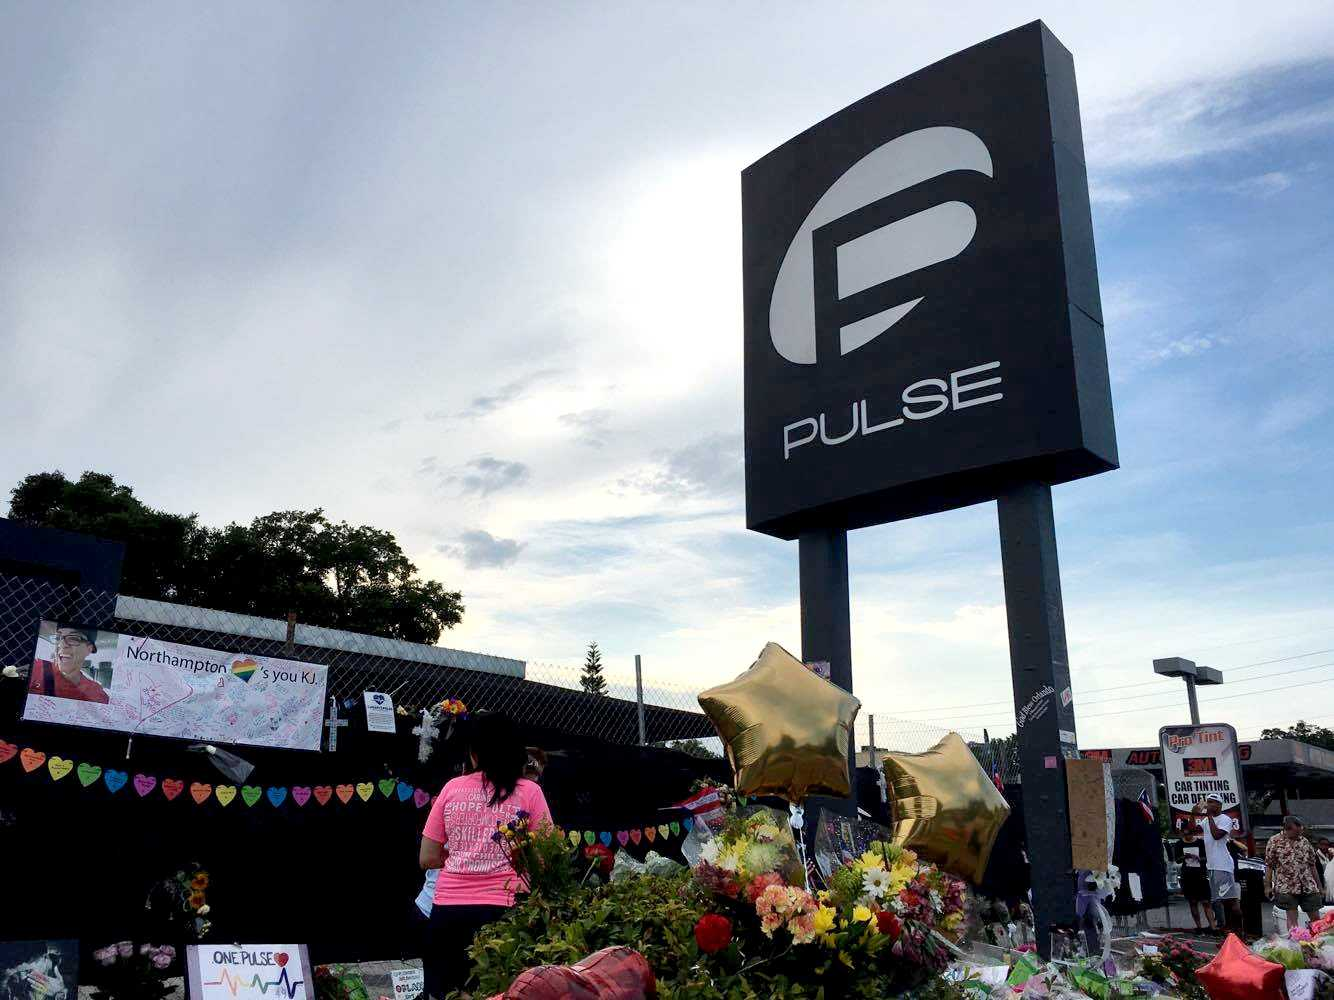 Police release audio from Orlando nightclub shooting